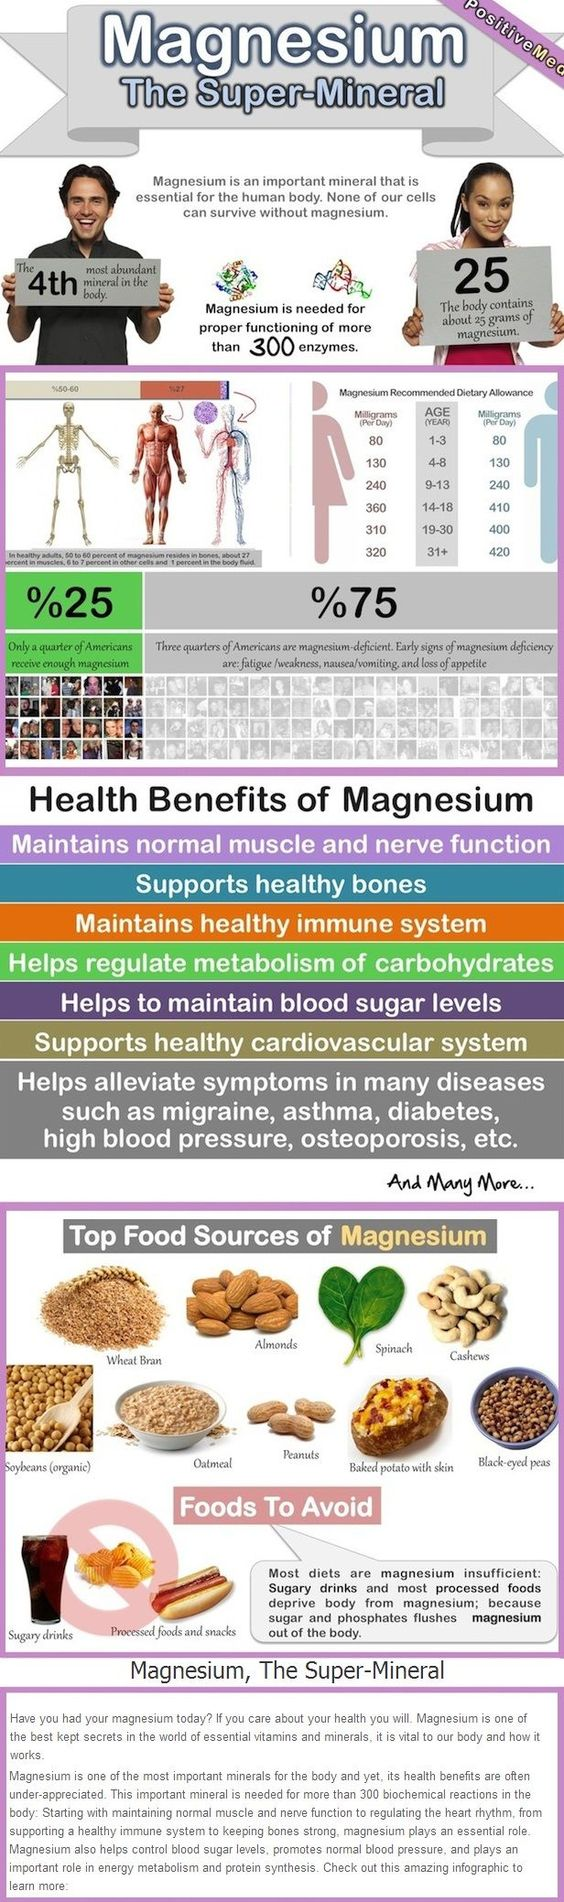 Magnesium The Super Mineral